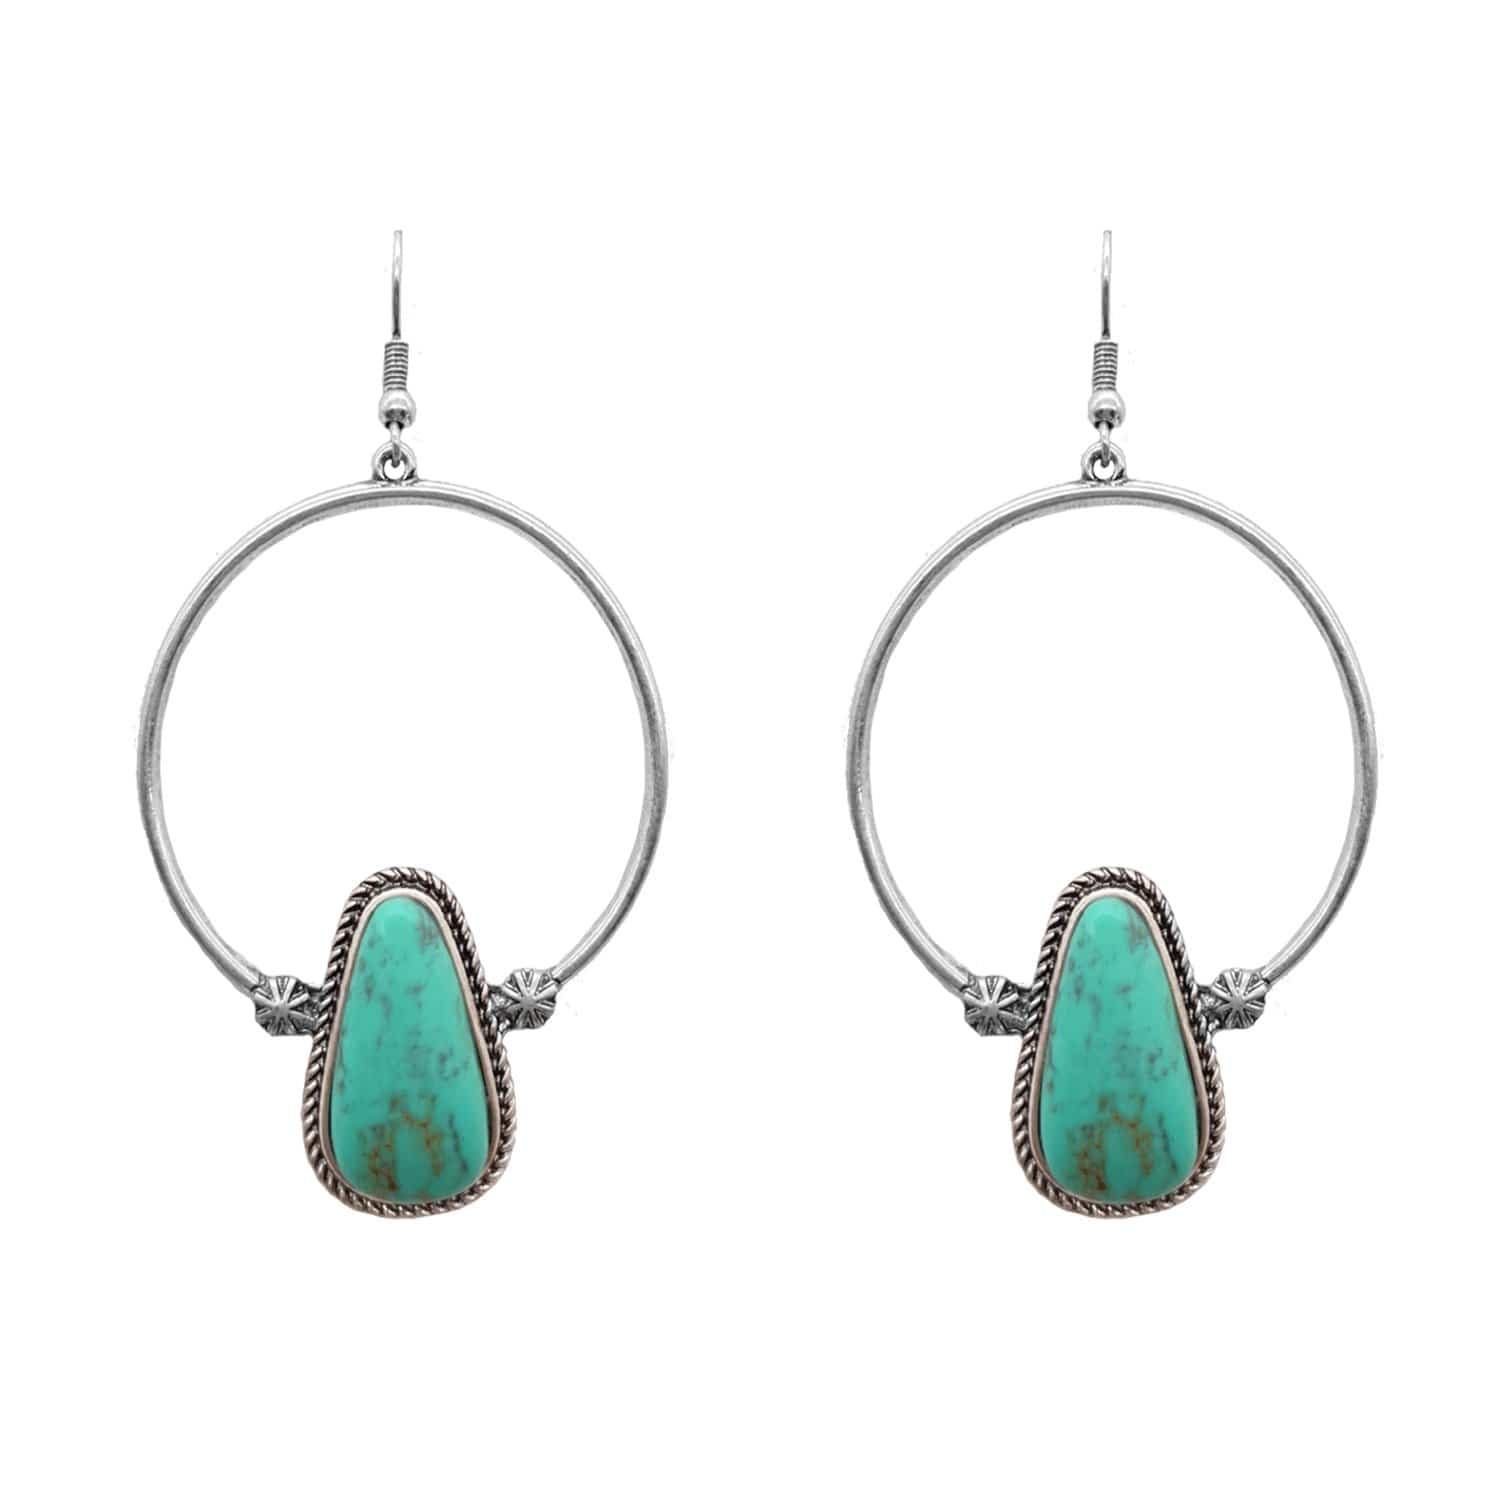 Accessorize In Style Fashion Earrings Fashion Hoop Turquoise Tear Drop Earrings